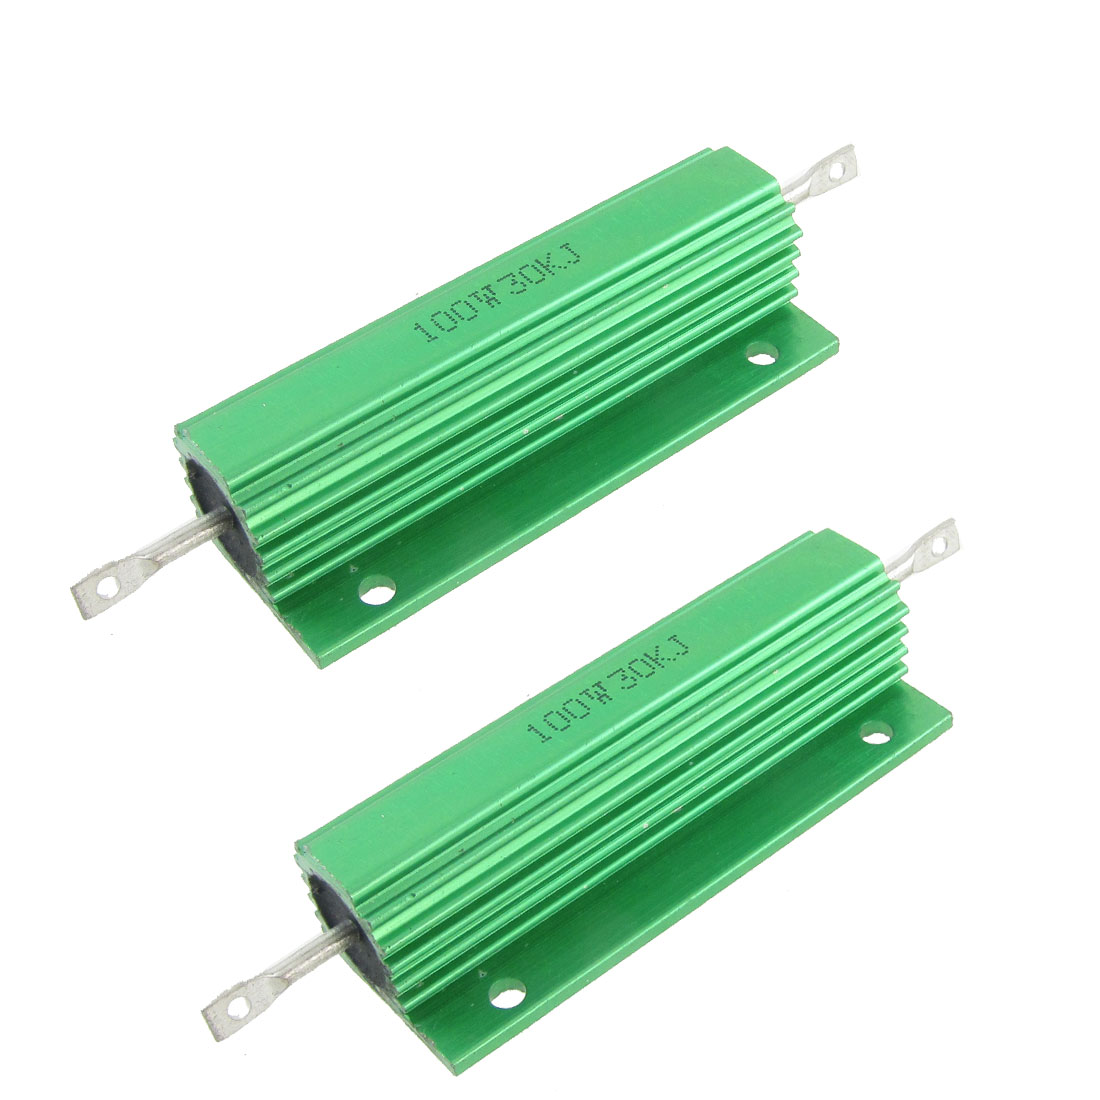 100W 30K Ohm Screw Tap Mounted Aluminum Housed Wirewound Resistors 2 Pcs